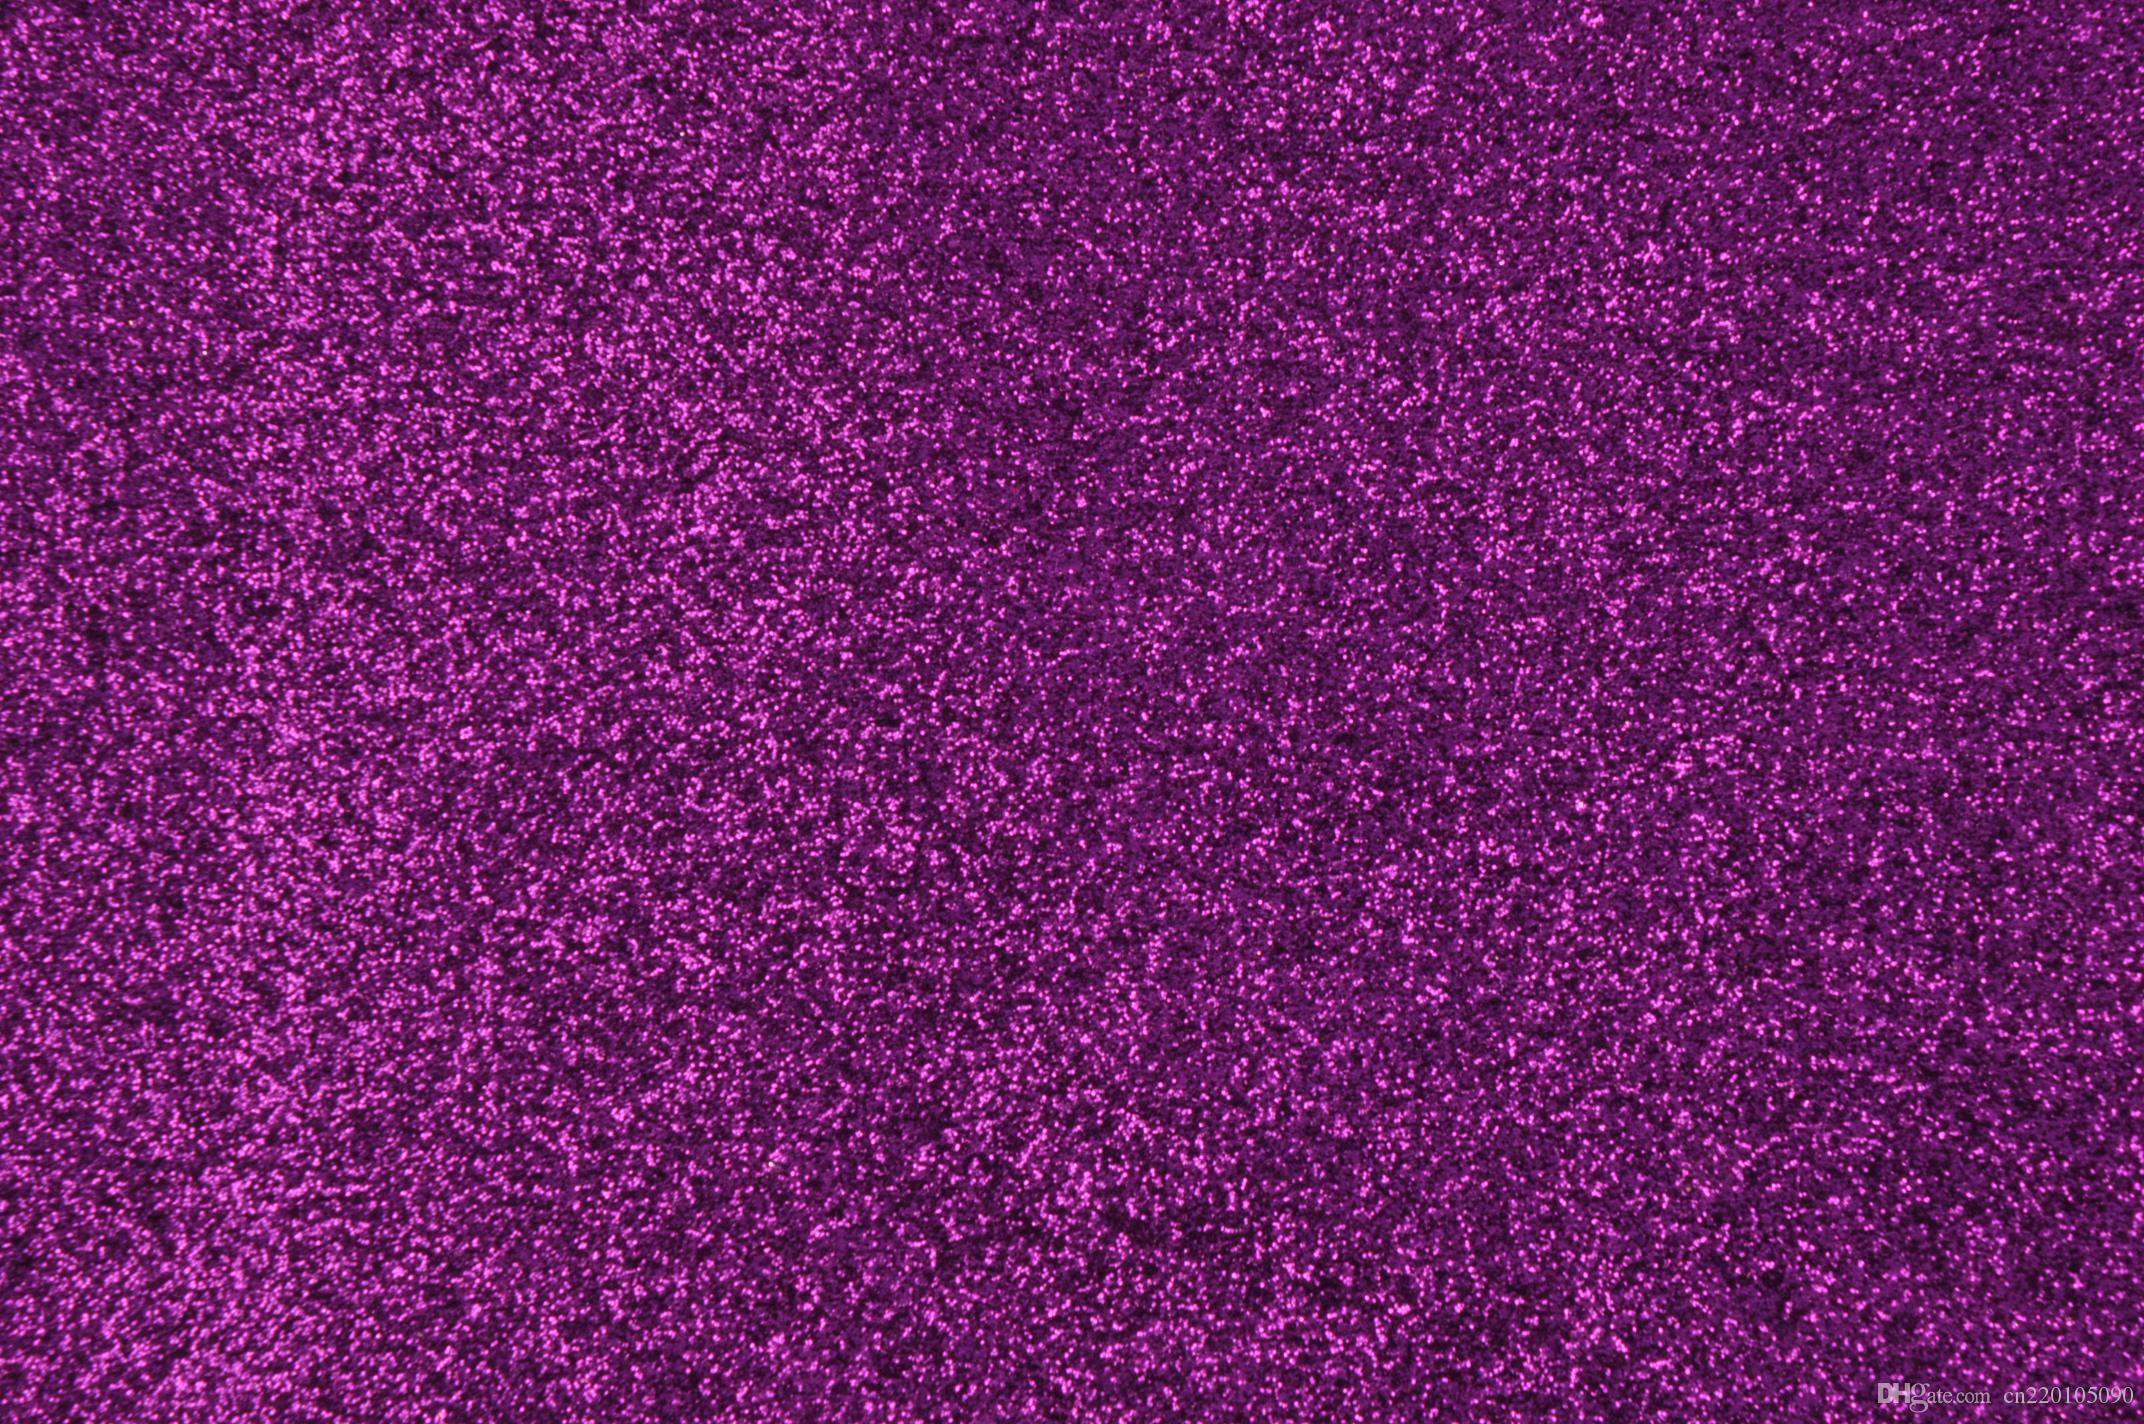 Jc Pack Crafting Glitter Fabric Glitter Fabric For Home Decoration